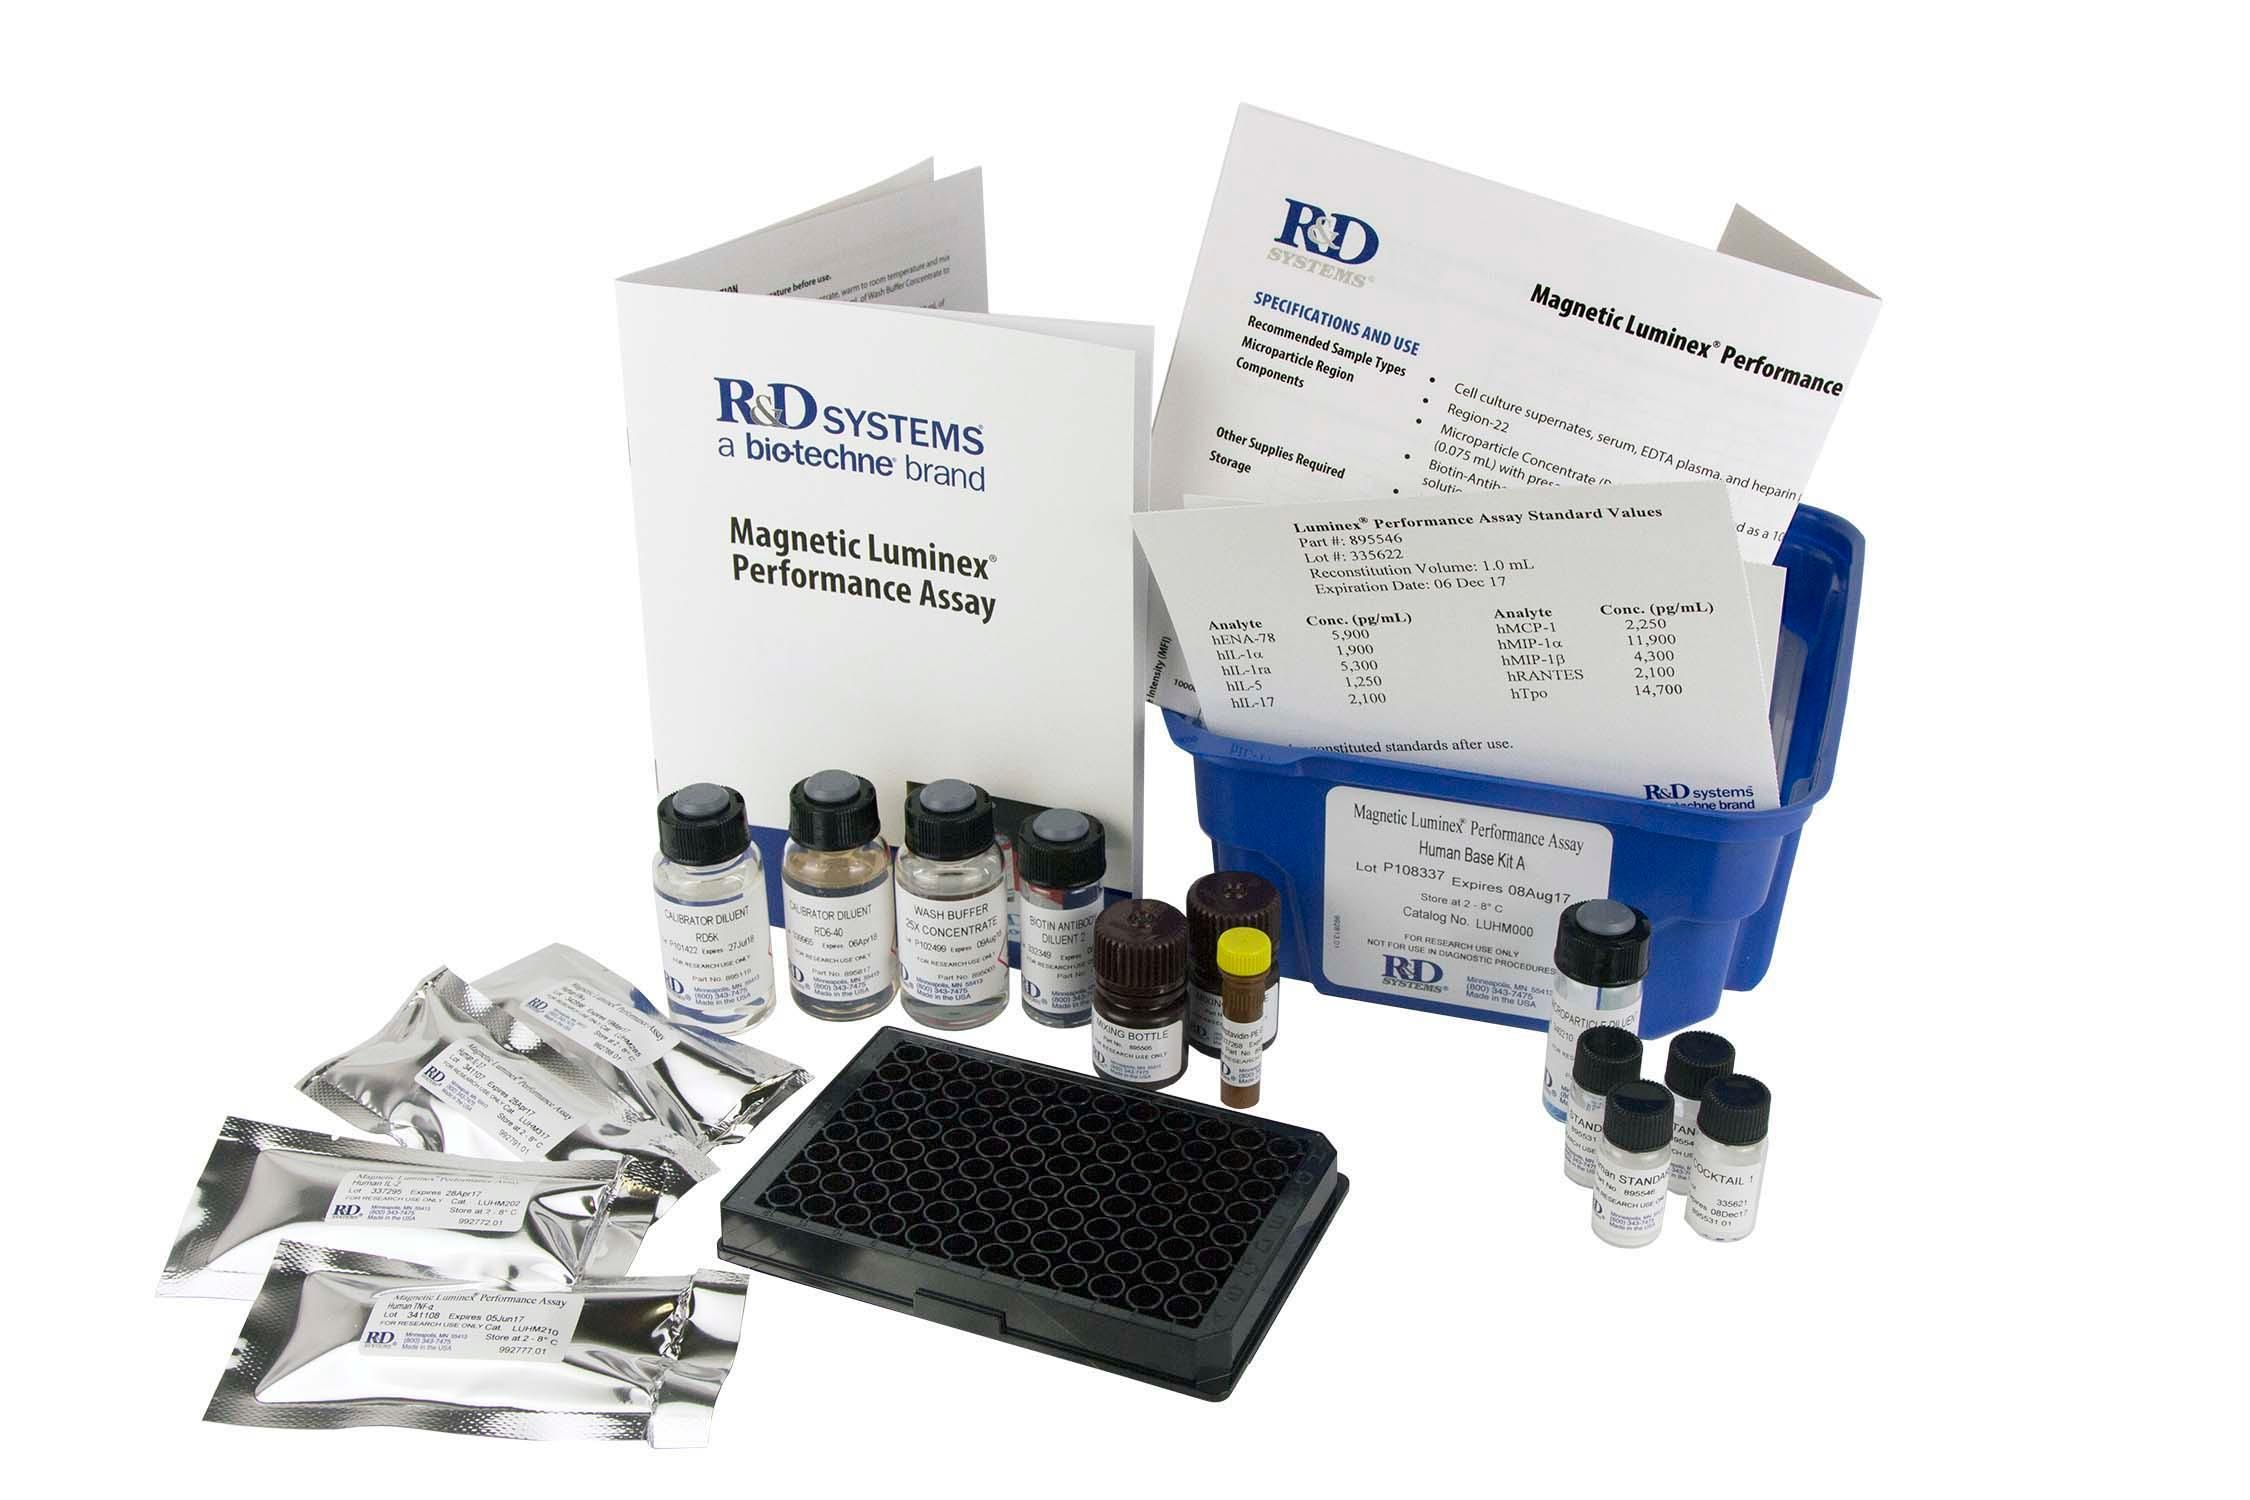 R&D Systems: Human IL-1 beta/IL-1F2 Magnetic Luminex Performance Assay